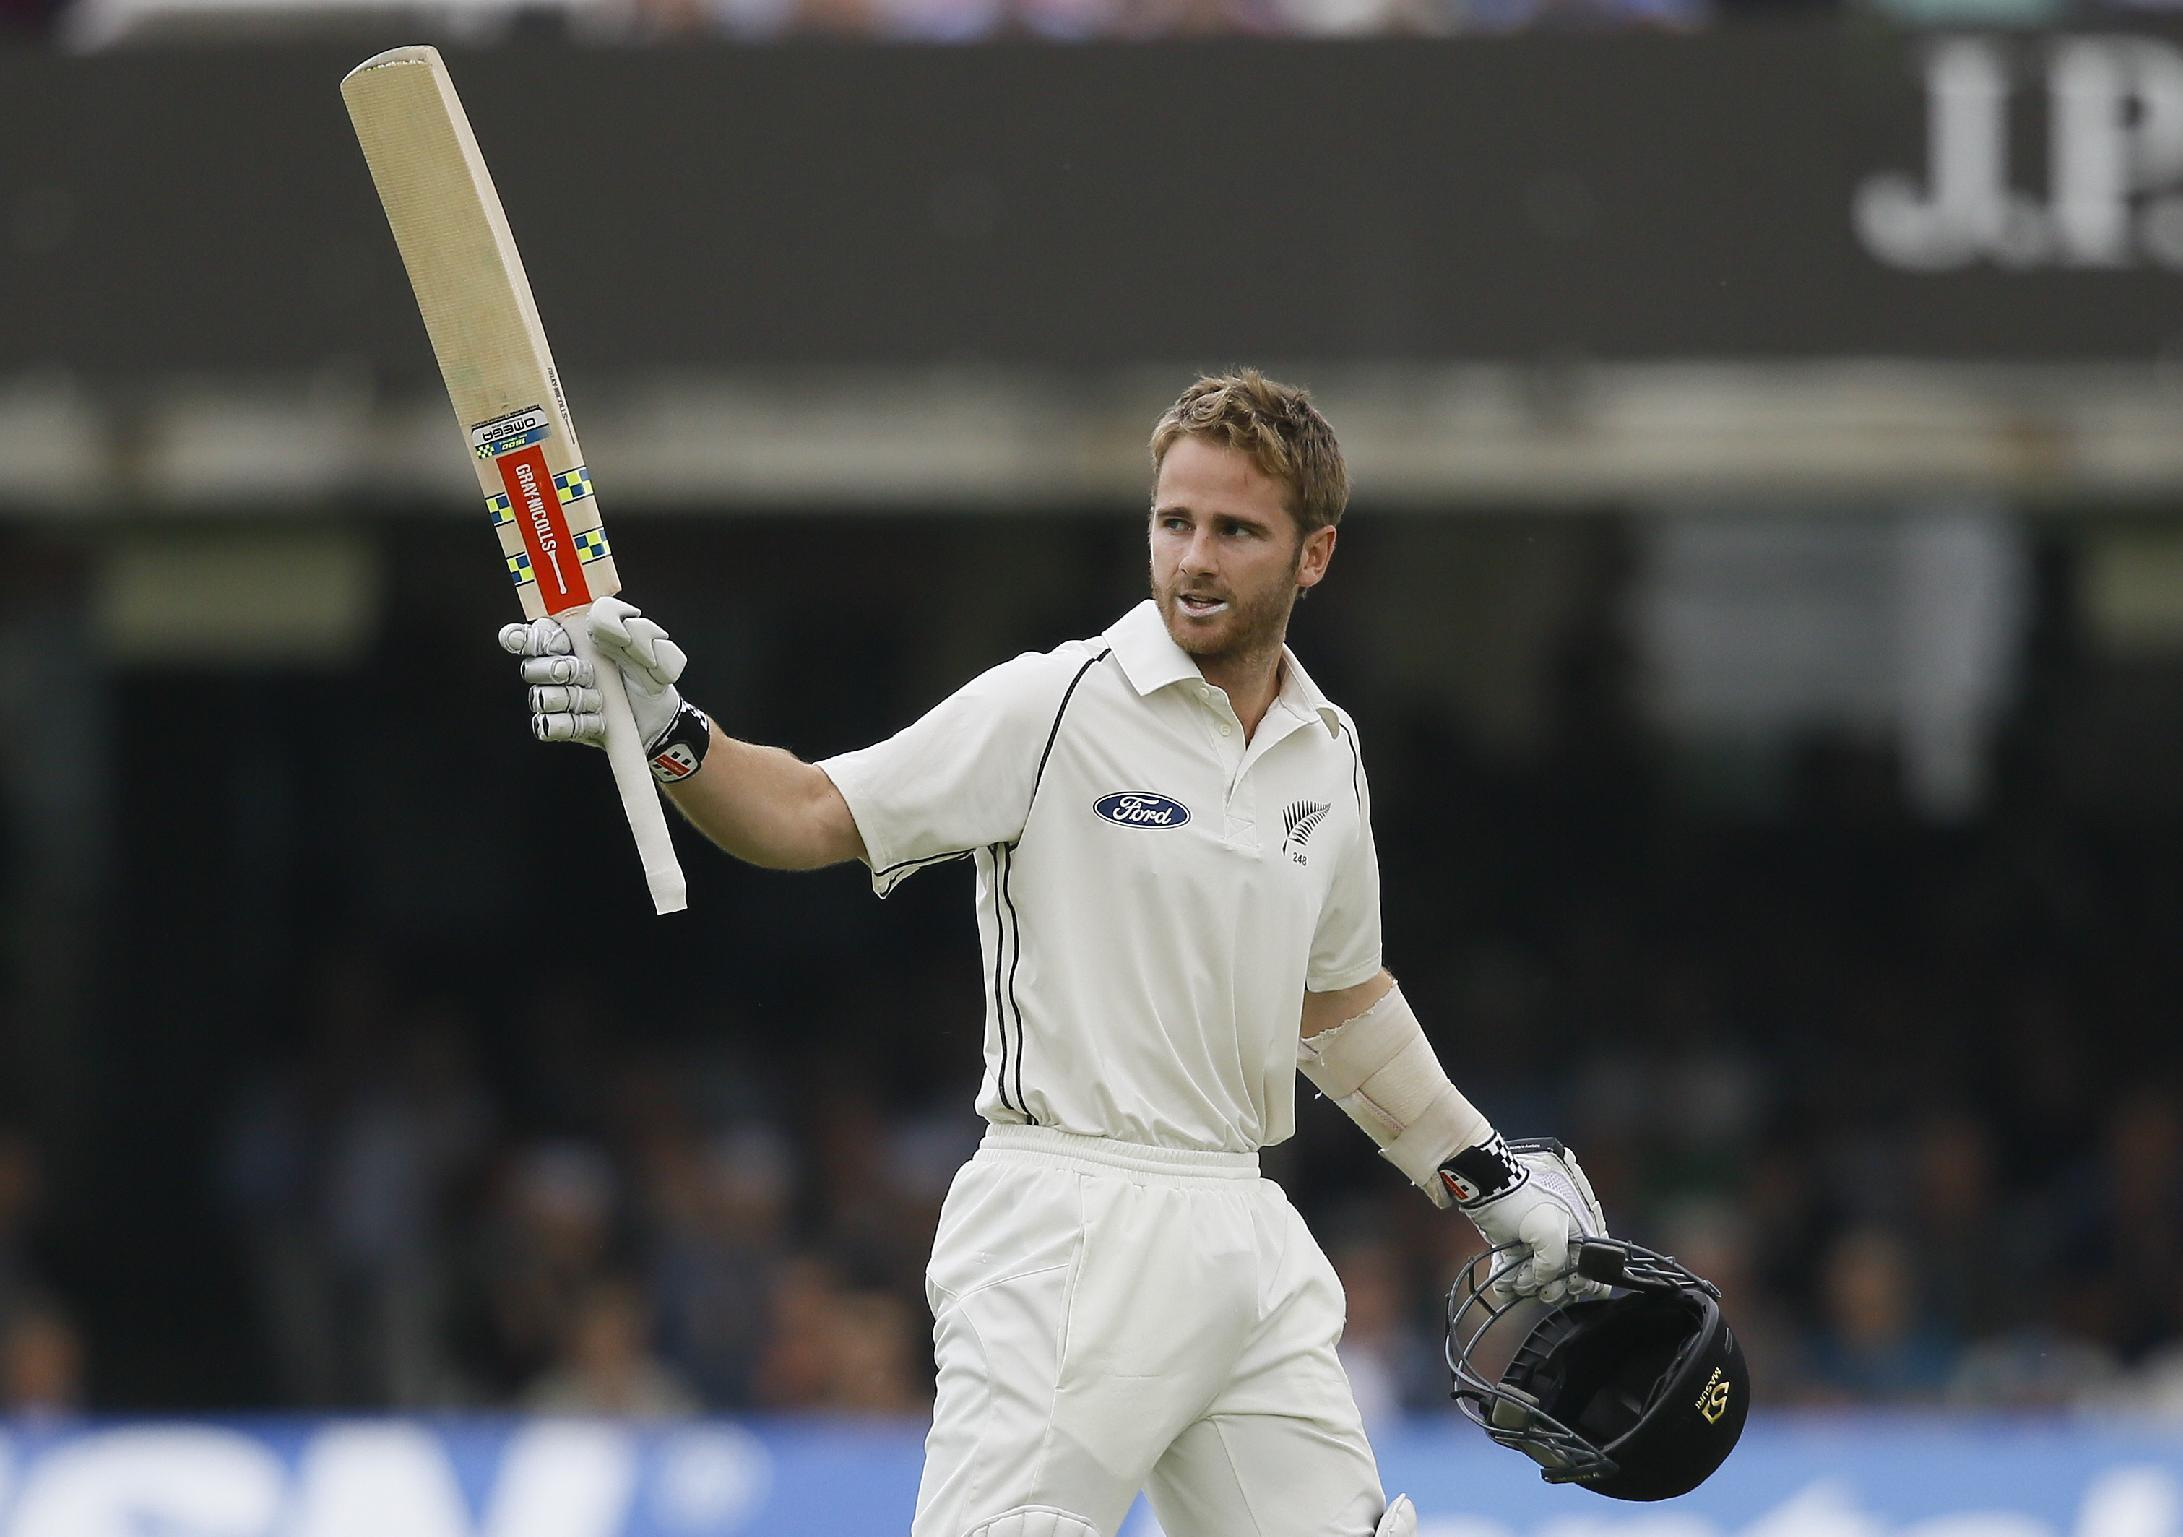 England trail NZ by 60 with 8 wickets left after day 3